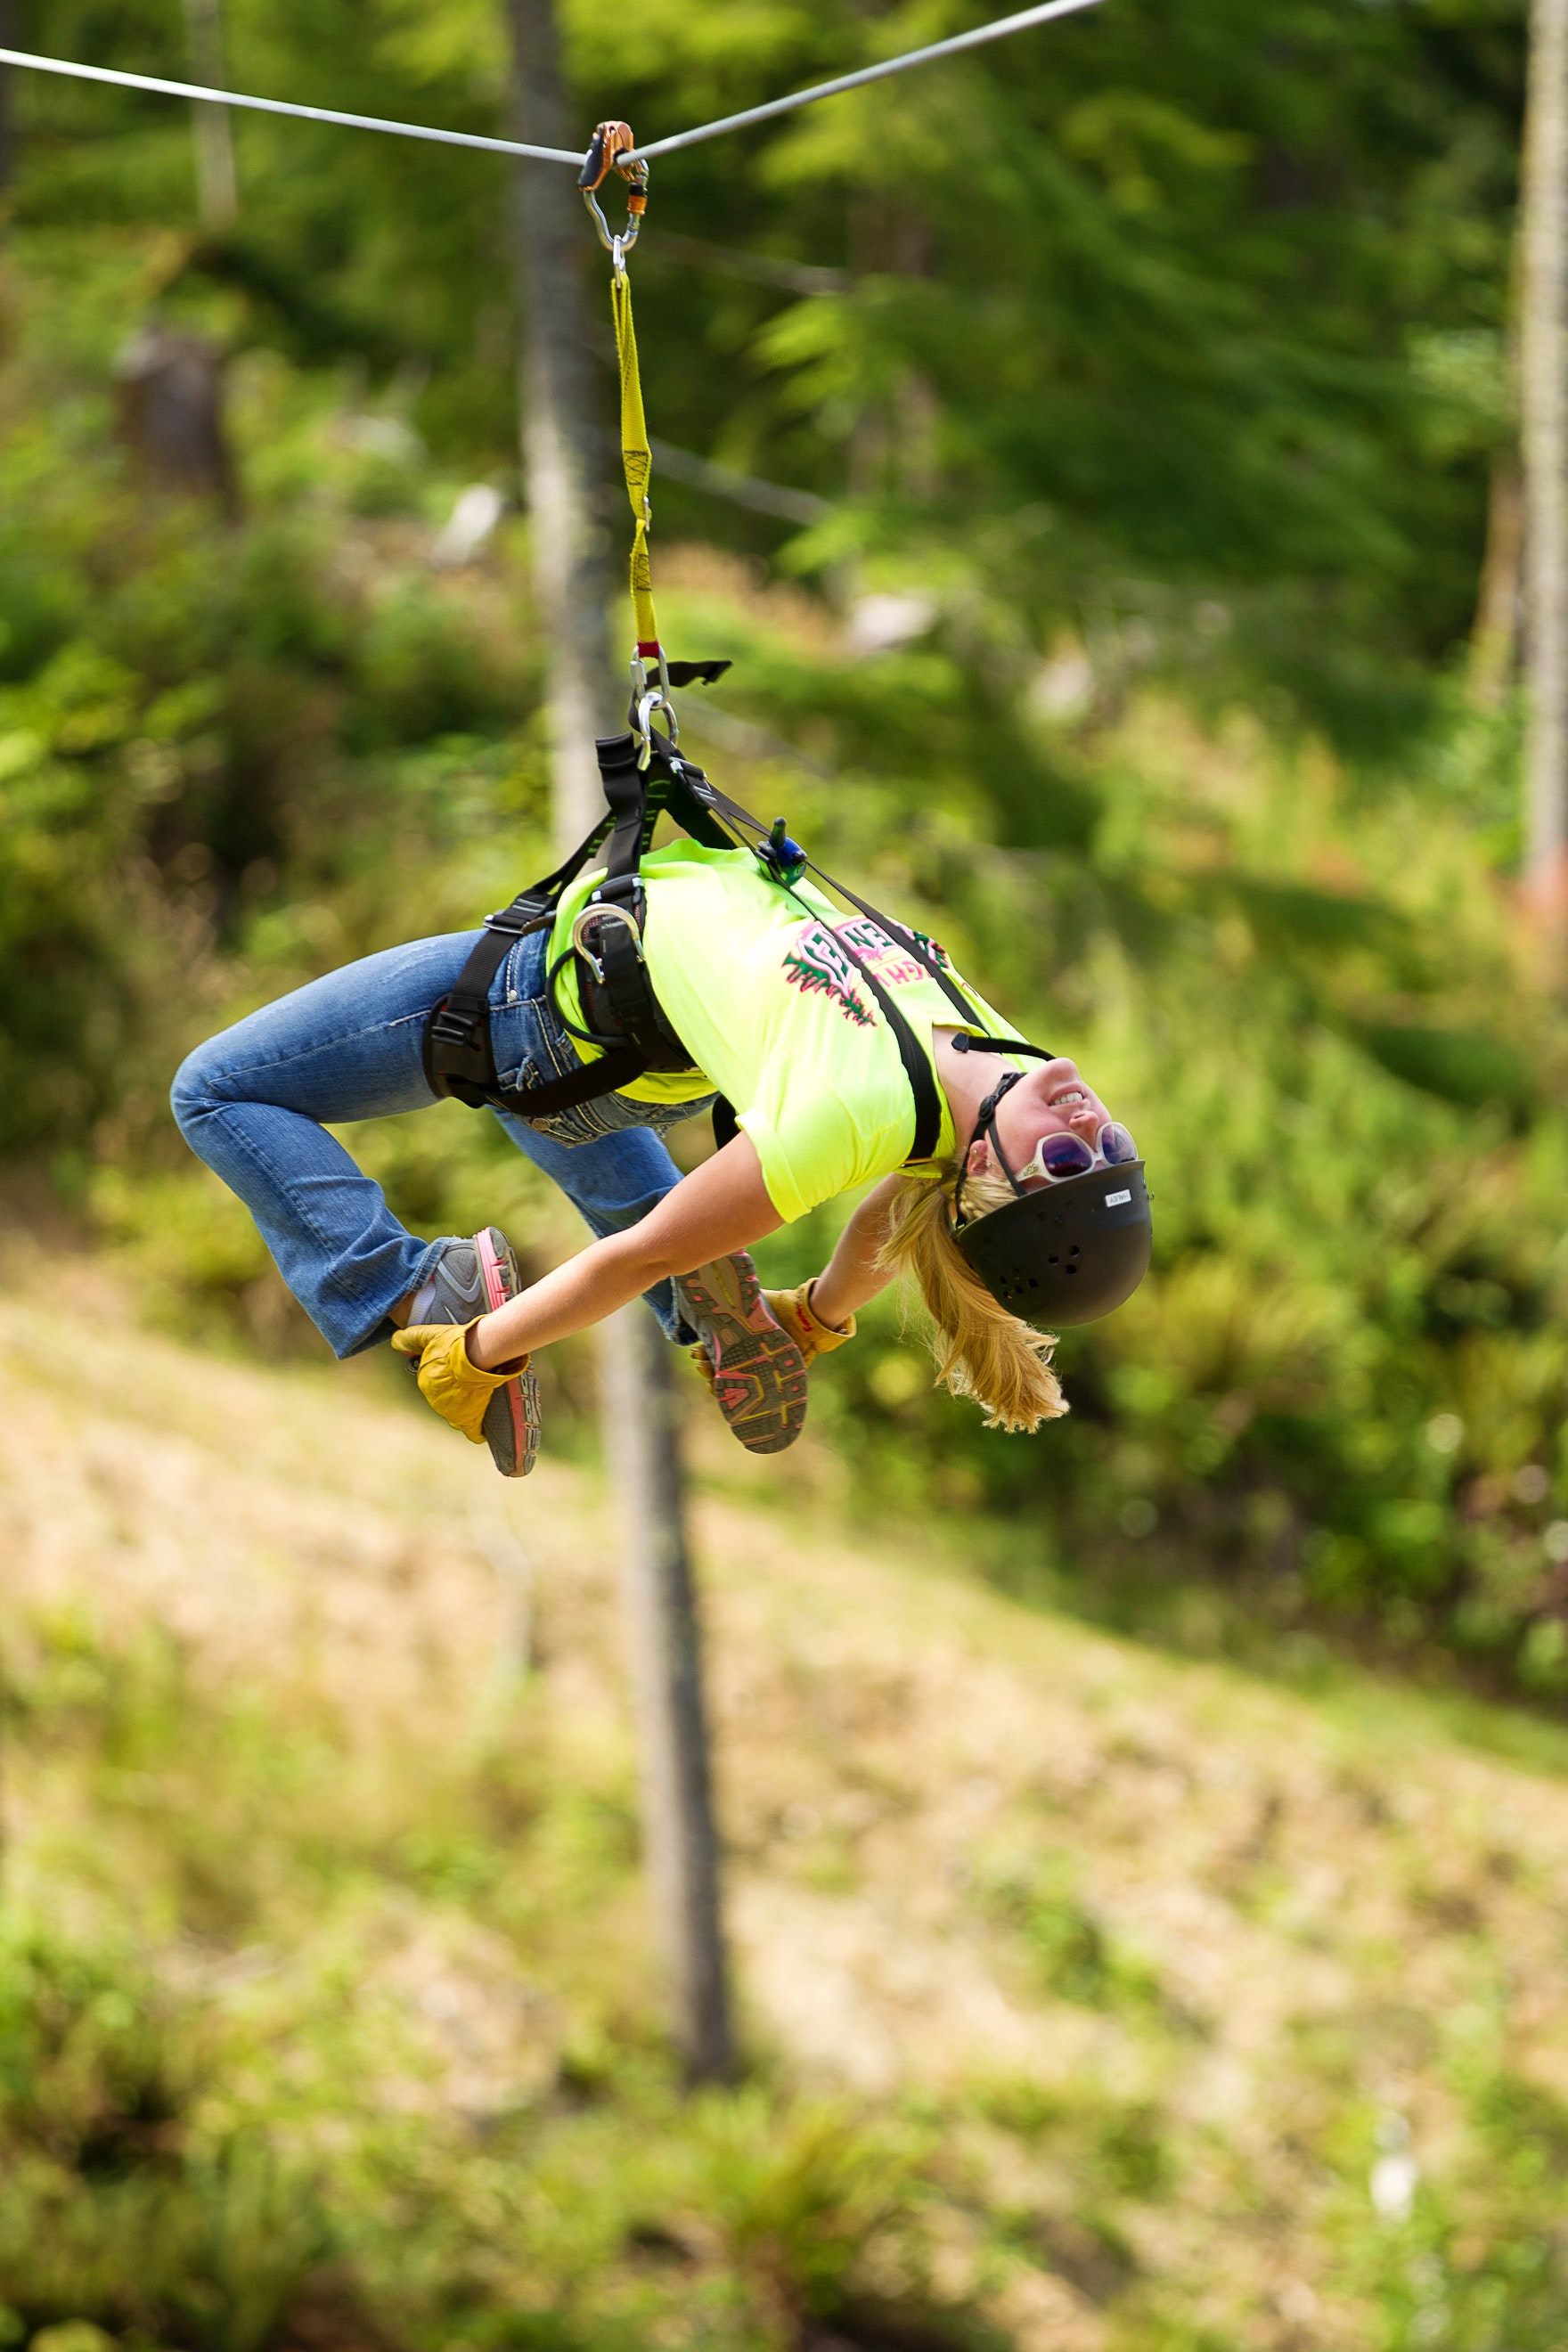 Haley grabs her feet as she zip lines